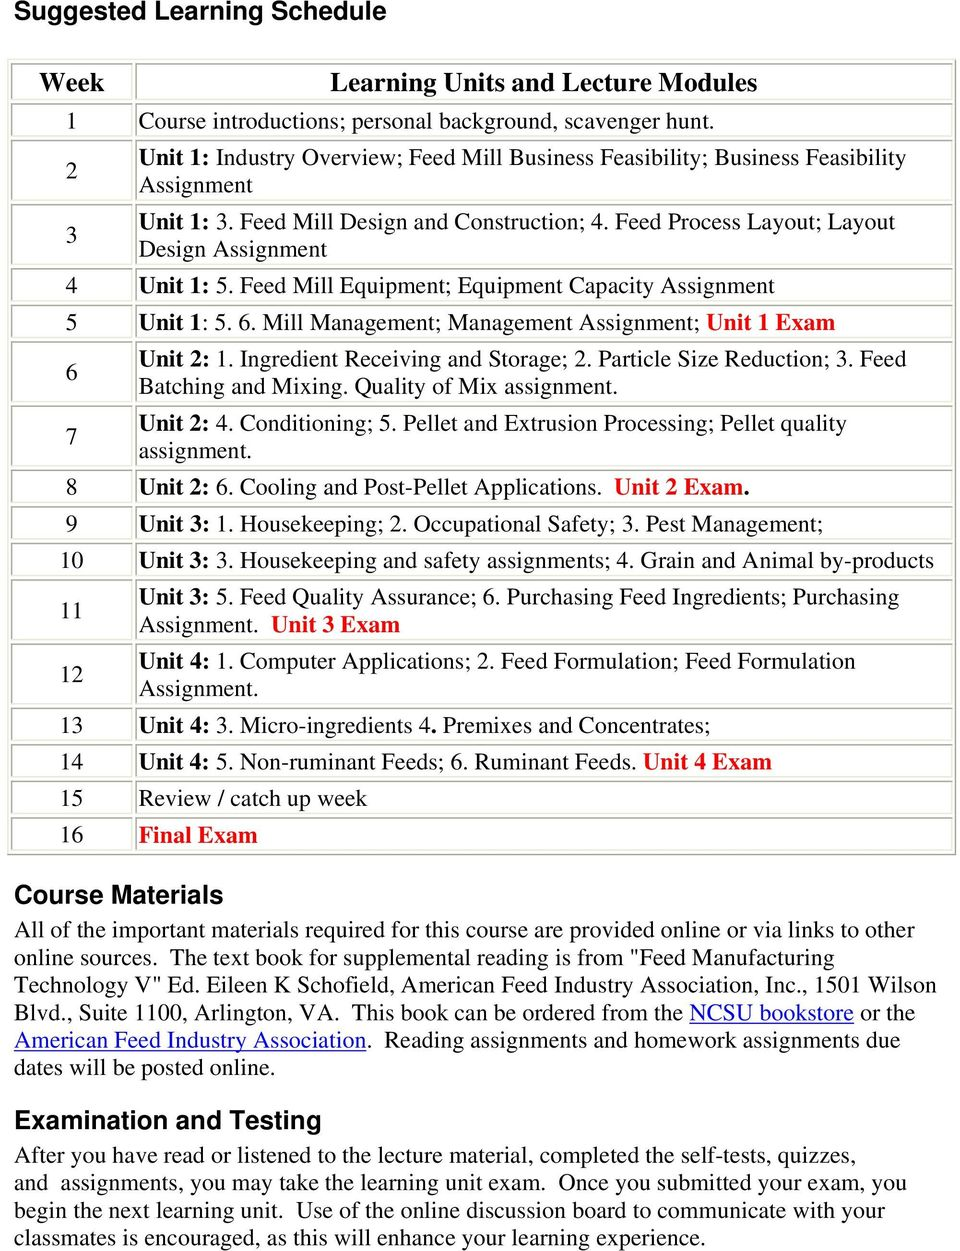 feed mill manufacturing technology po ans 425 sec pdf feed process layout layout 3 design assignment 4 unit 1 5 feed mill